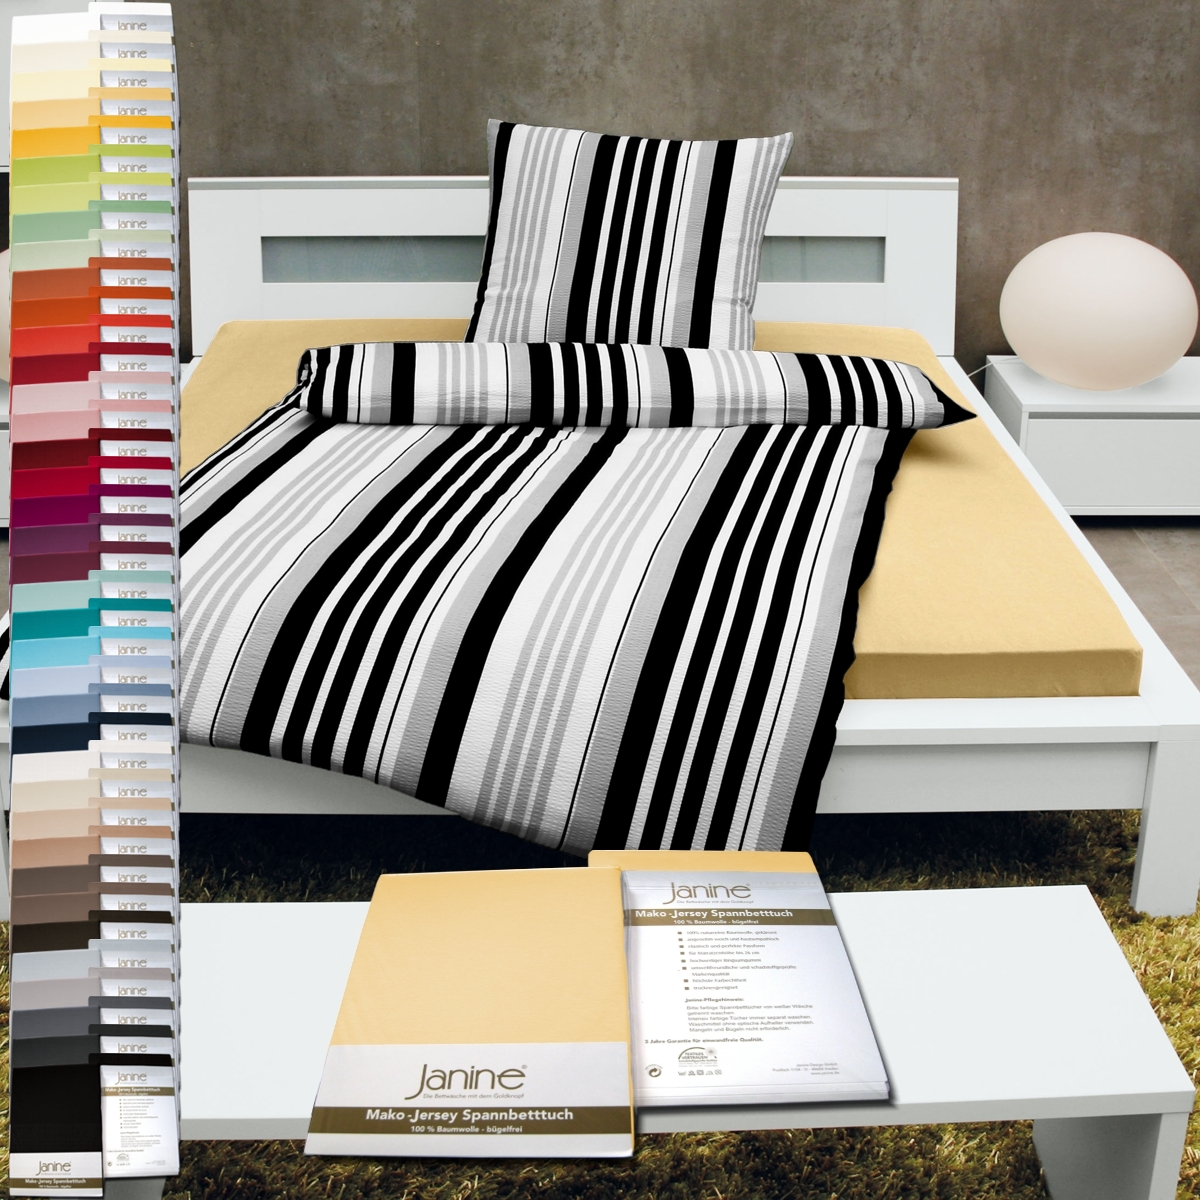 janine classic mako jersey spannbettlaken von 90x190 bis 200x200 cm. Black Bedroom Furniture Sets. Home Design Ideas